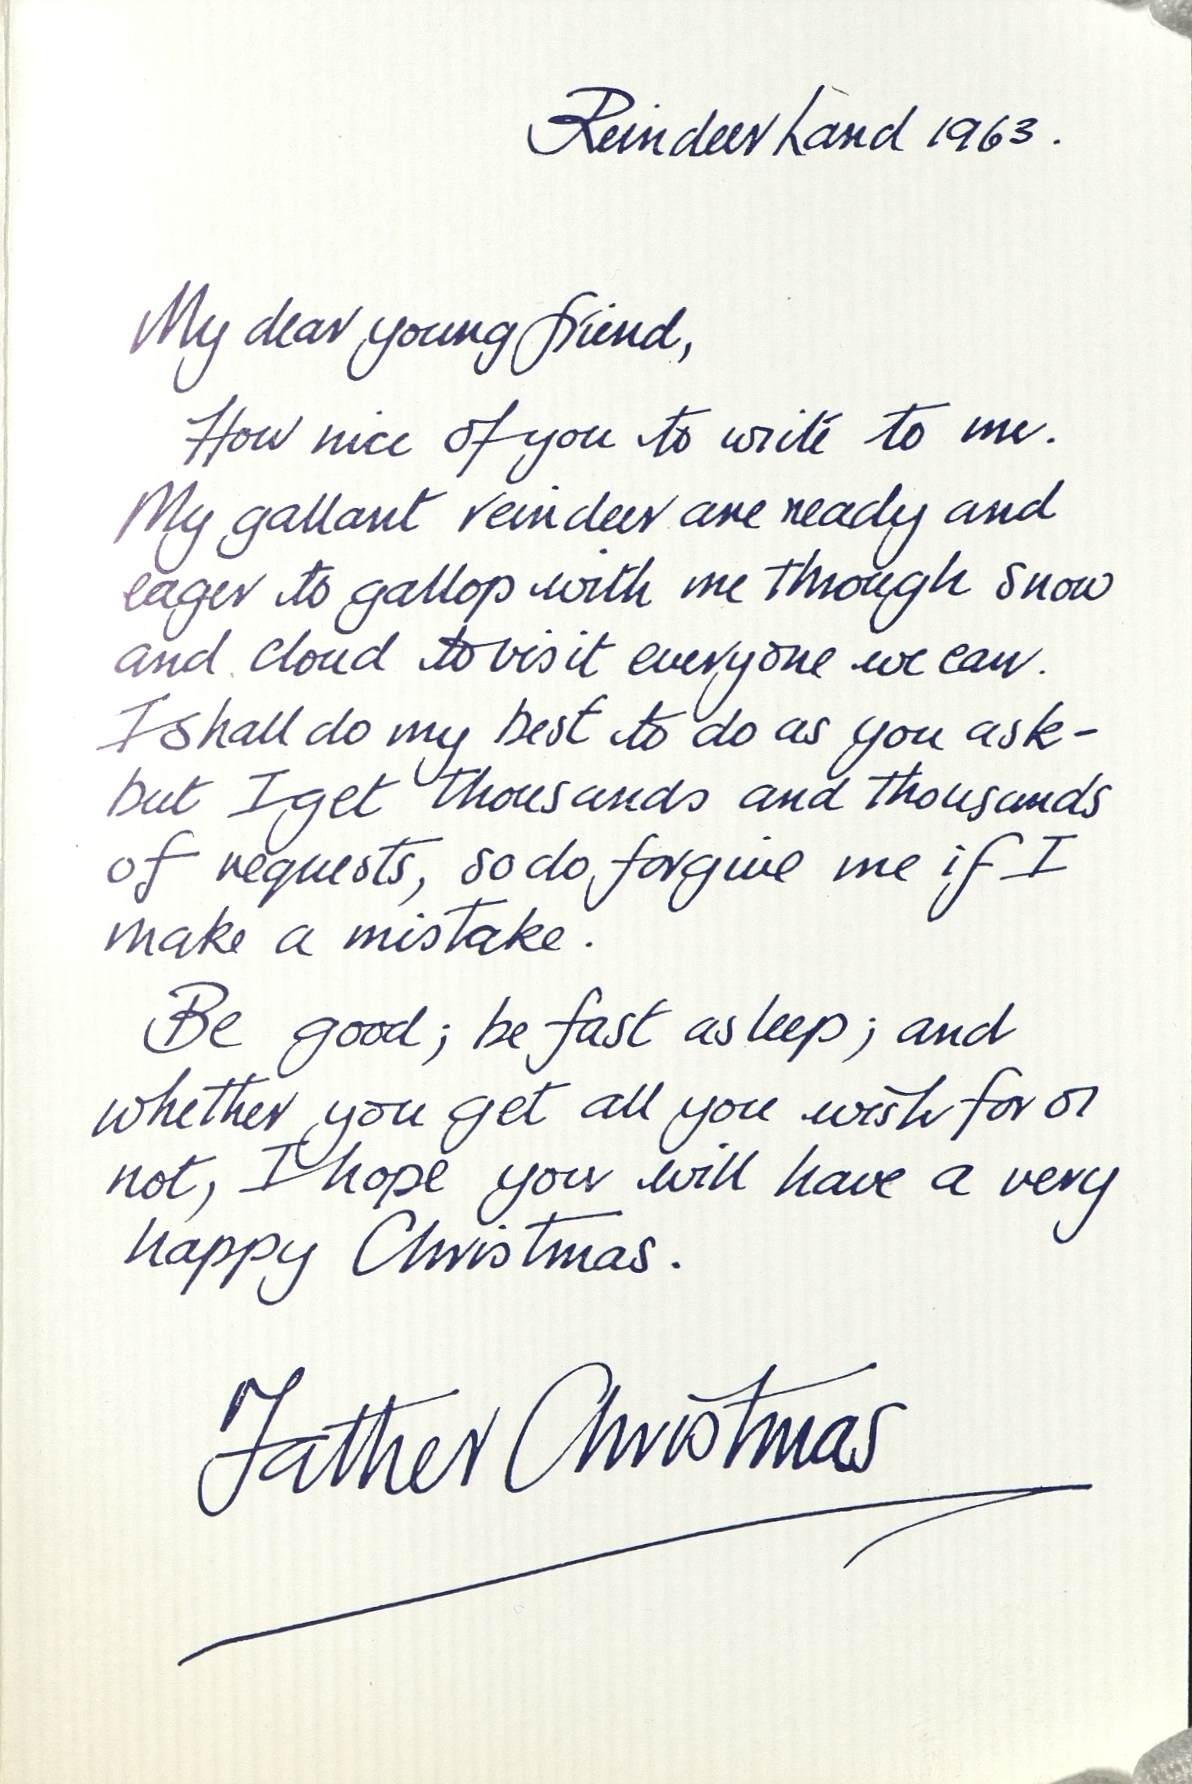 Letter from Santa 1963. © Royal Mail Group Ltd, courtesy of The British Postal Museum & Archive